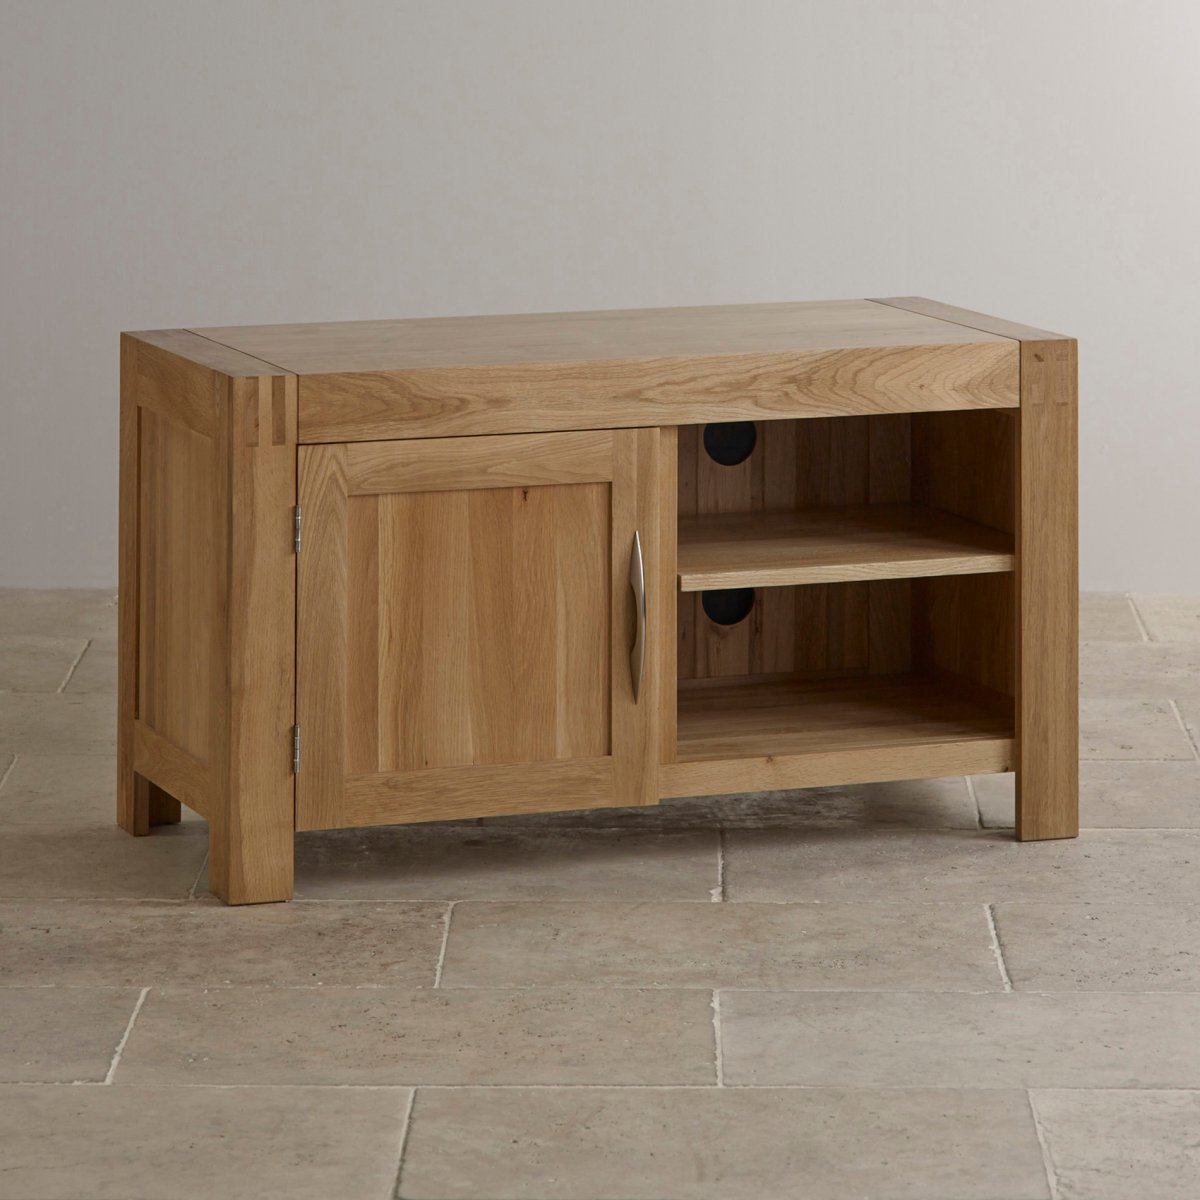 Alto tv dvd cabinet in natural solid oak oak furniture for Oak furniture land